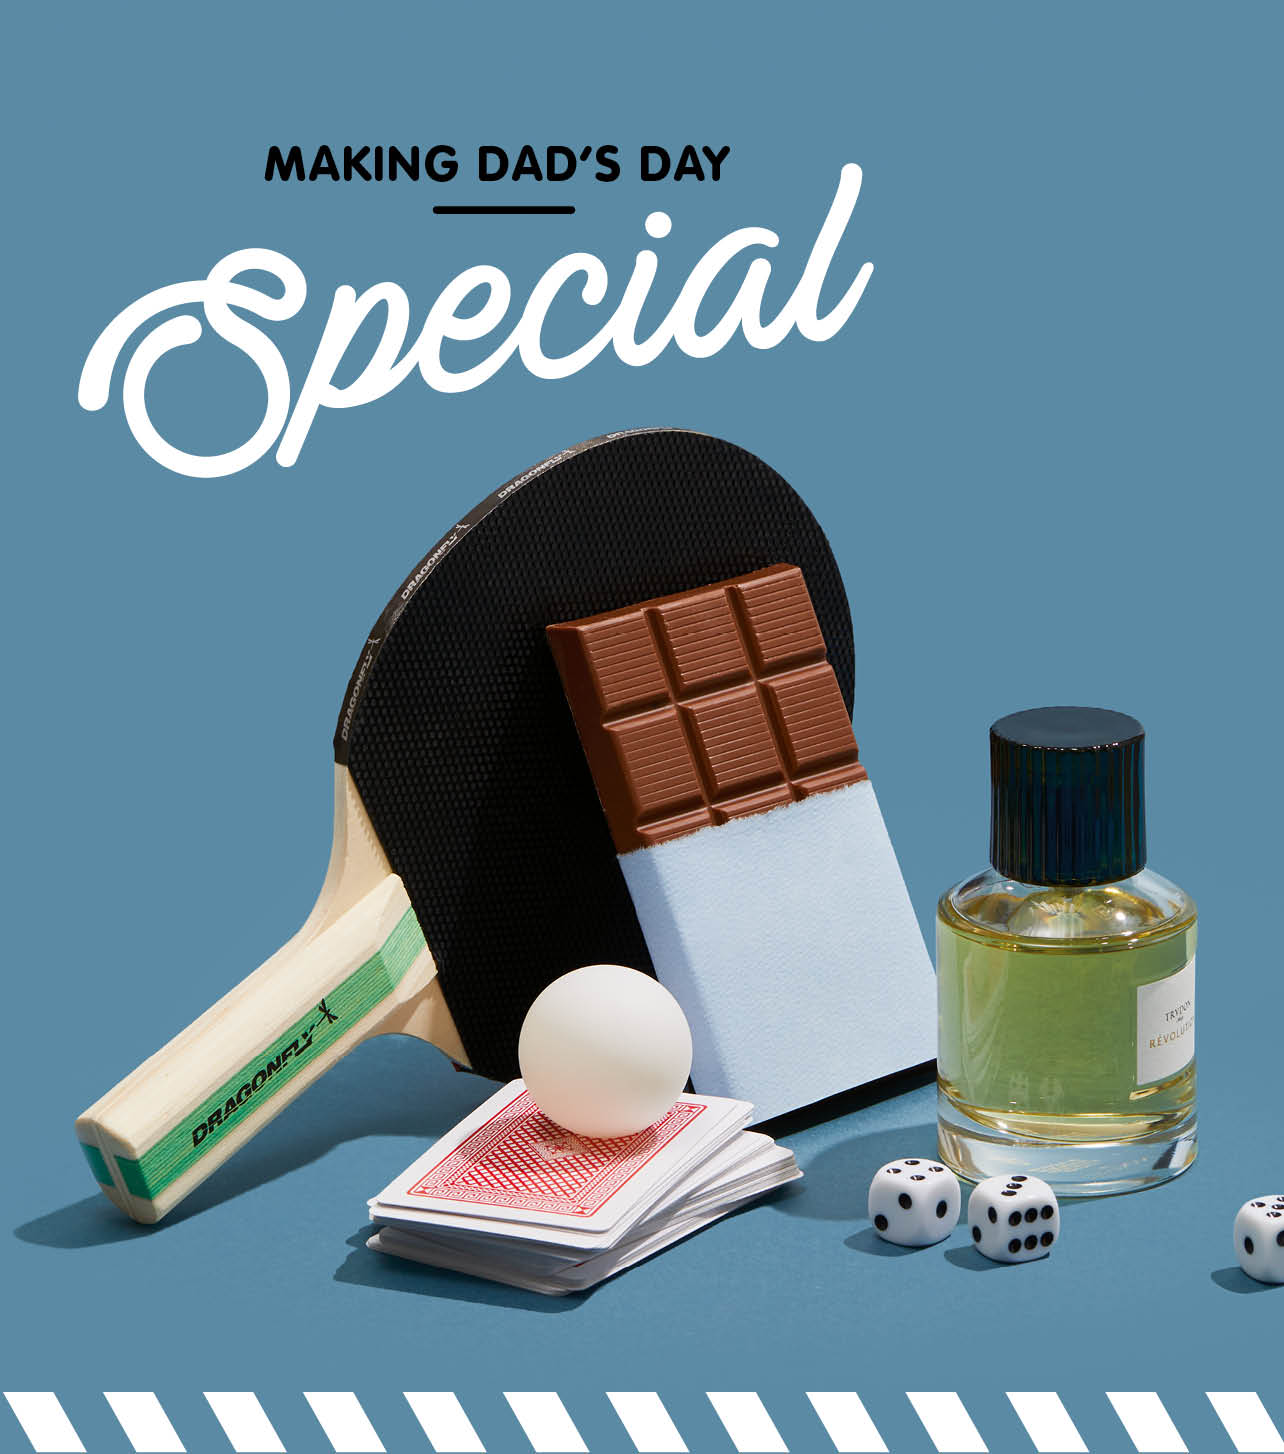 CH4891_Charter Hall_National_Fathers Day Creative_Web Tiles_642x727px